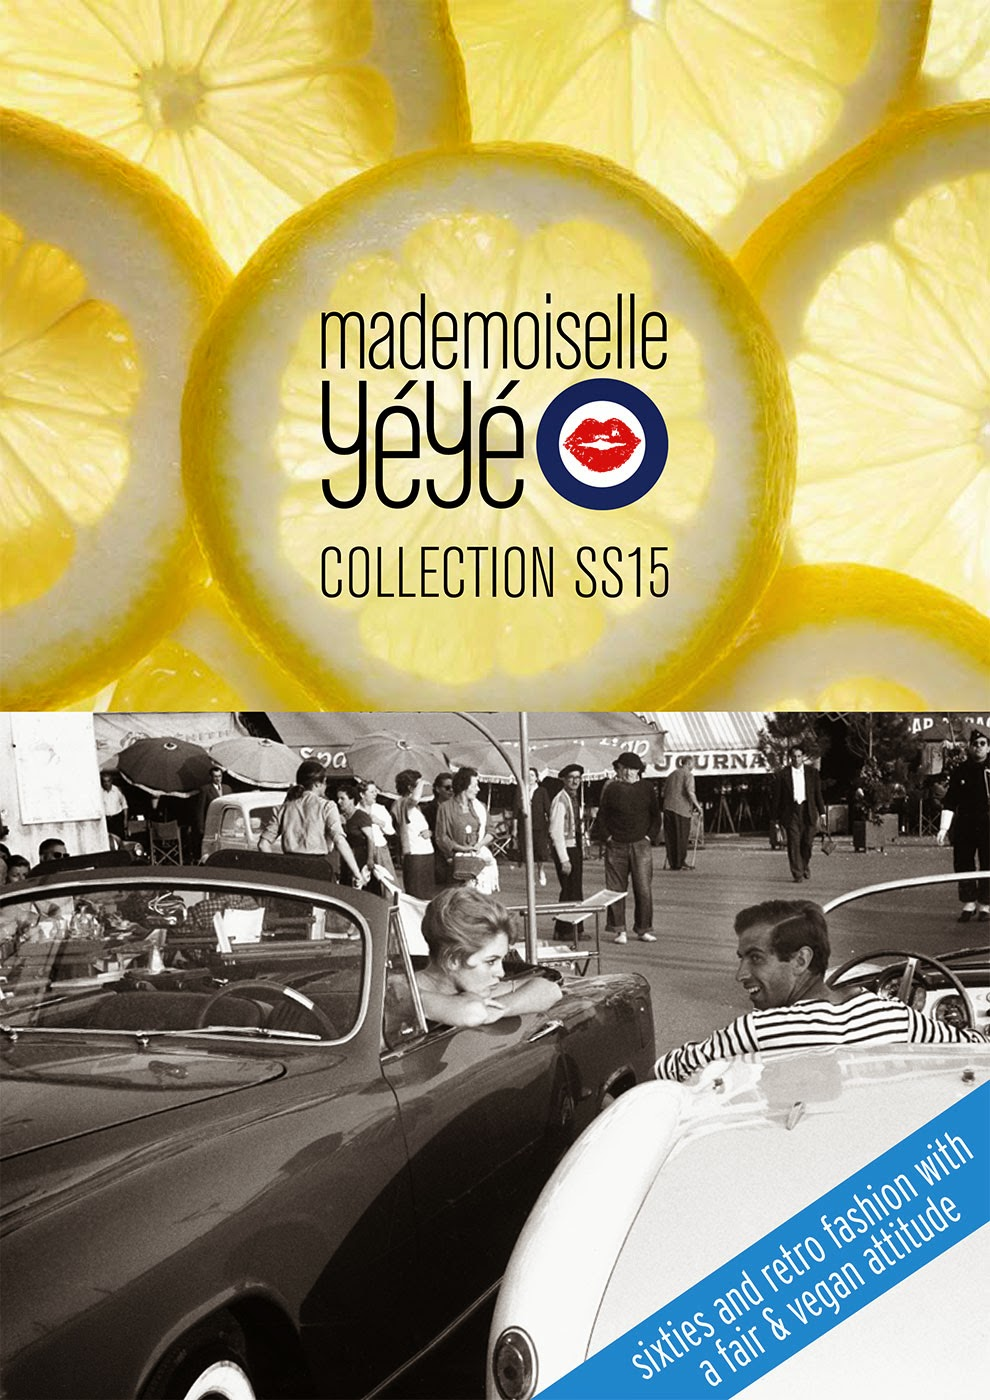 Preview: Mademoiselle Yéyé Spring 2015 collection